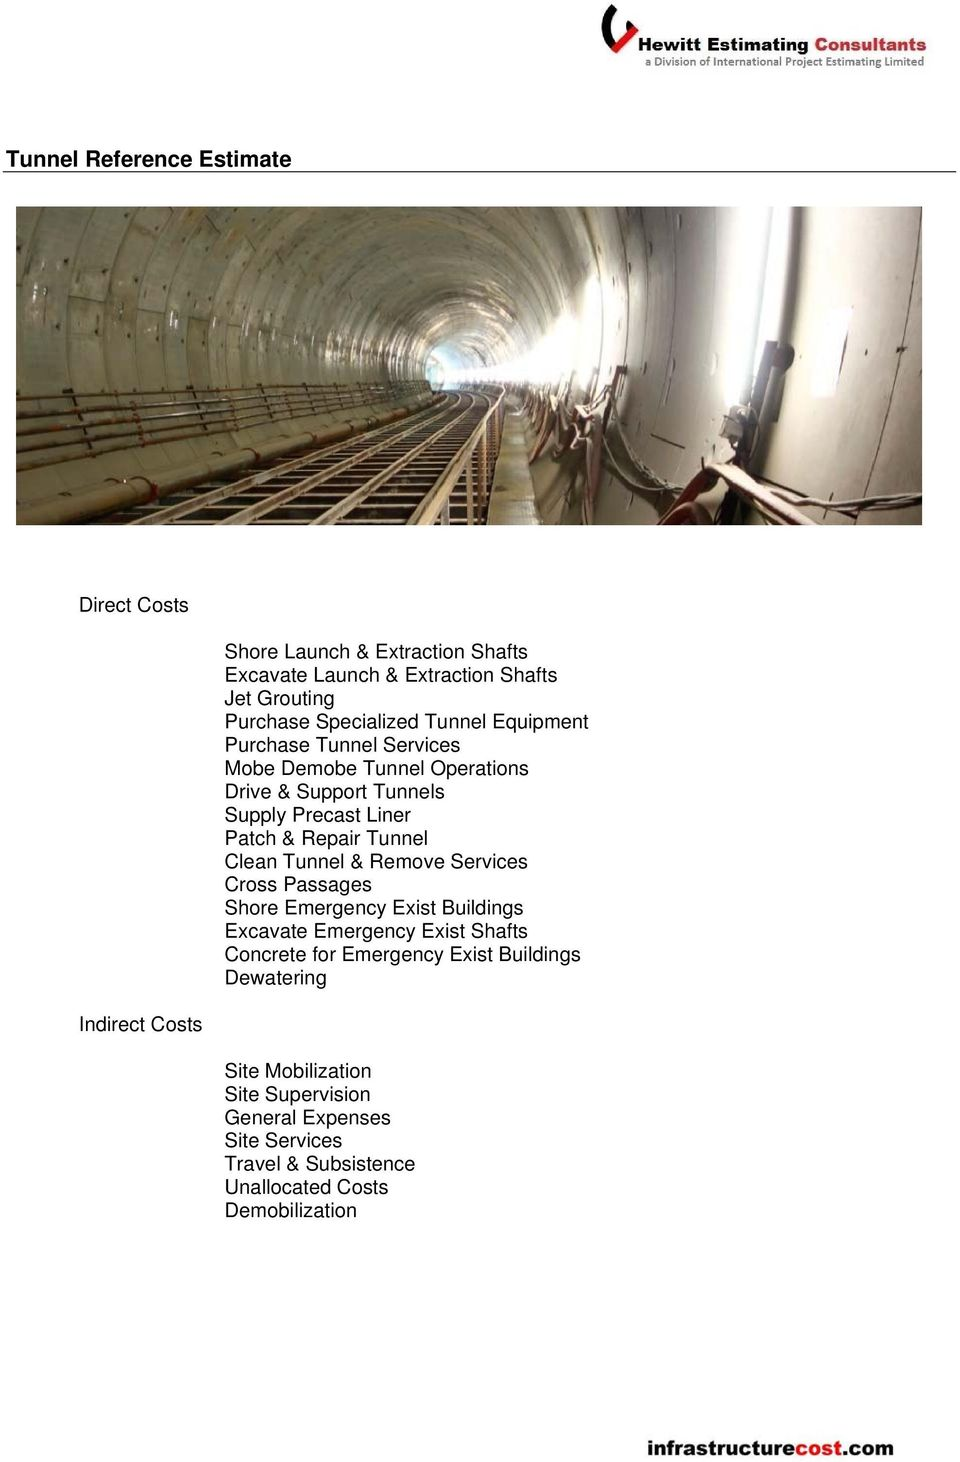 & Repair Tunnel Clean Tunnel & Remove Services Cross Passages Shore Emergency Exist Buildings Excavate Emergency Exist Shafts Concrete for